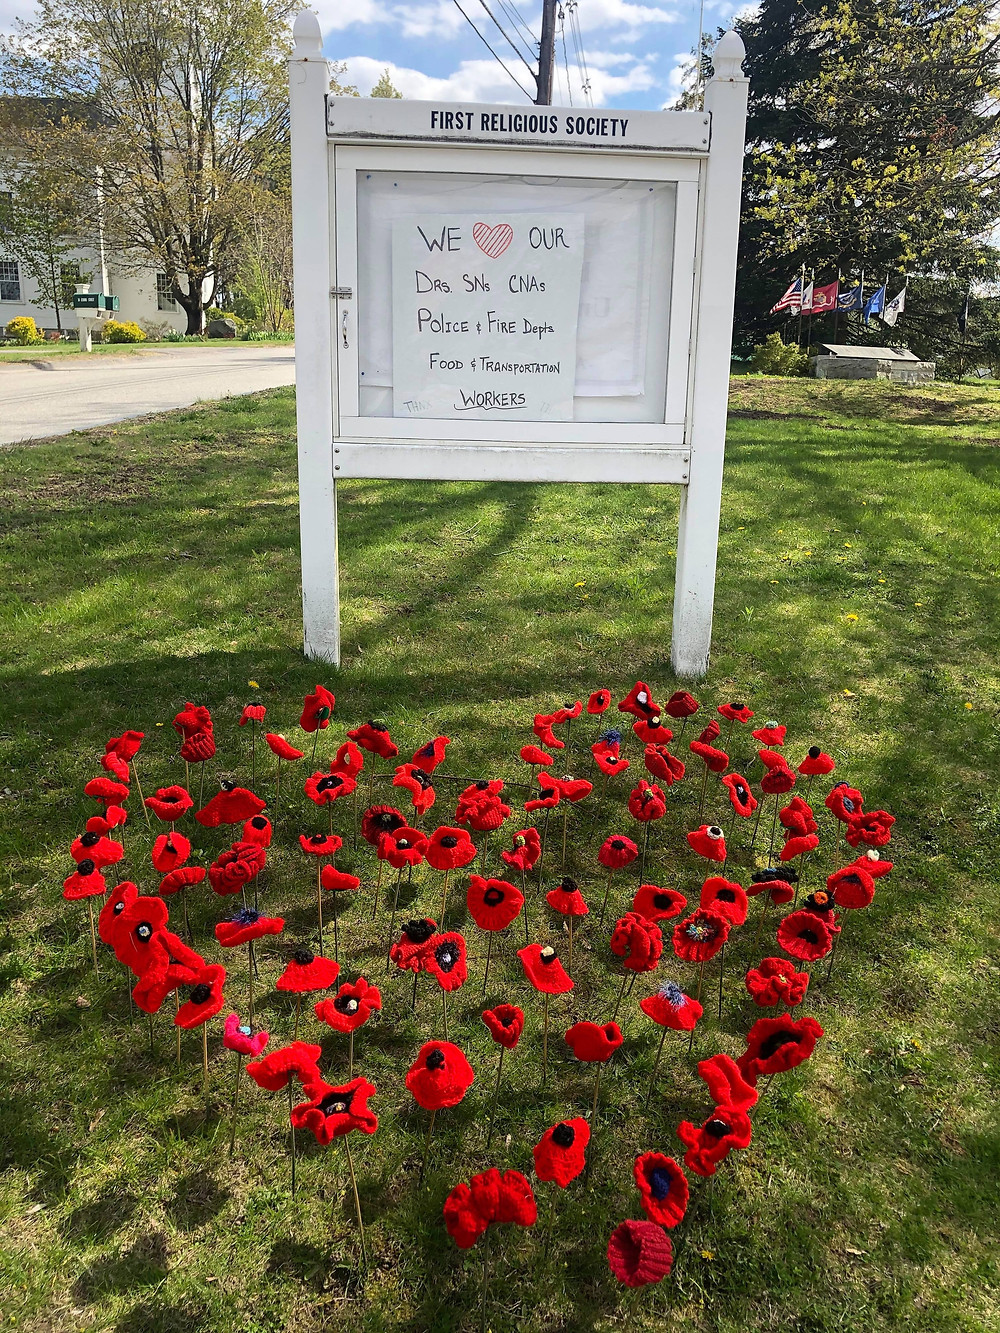 Image of homemade poppies forming a heart beneath a sign that reads We love ourrr Drs, SNs, CNAs, Police & Fire Depts, Food & Transportation Workers